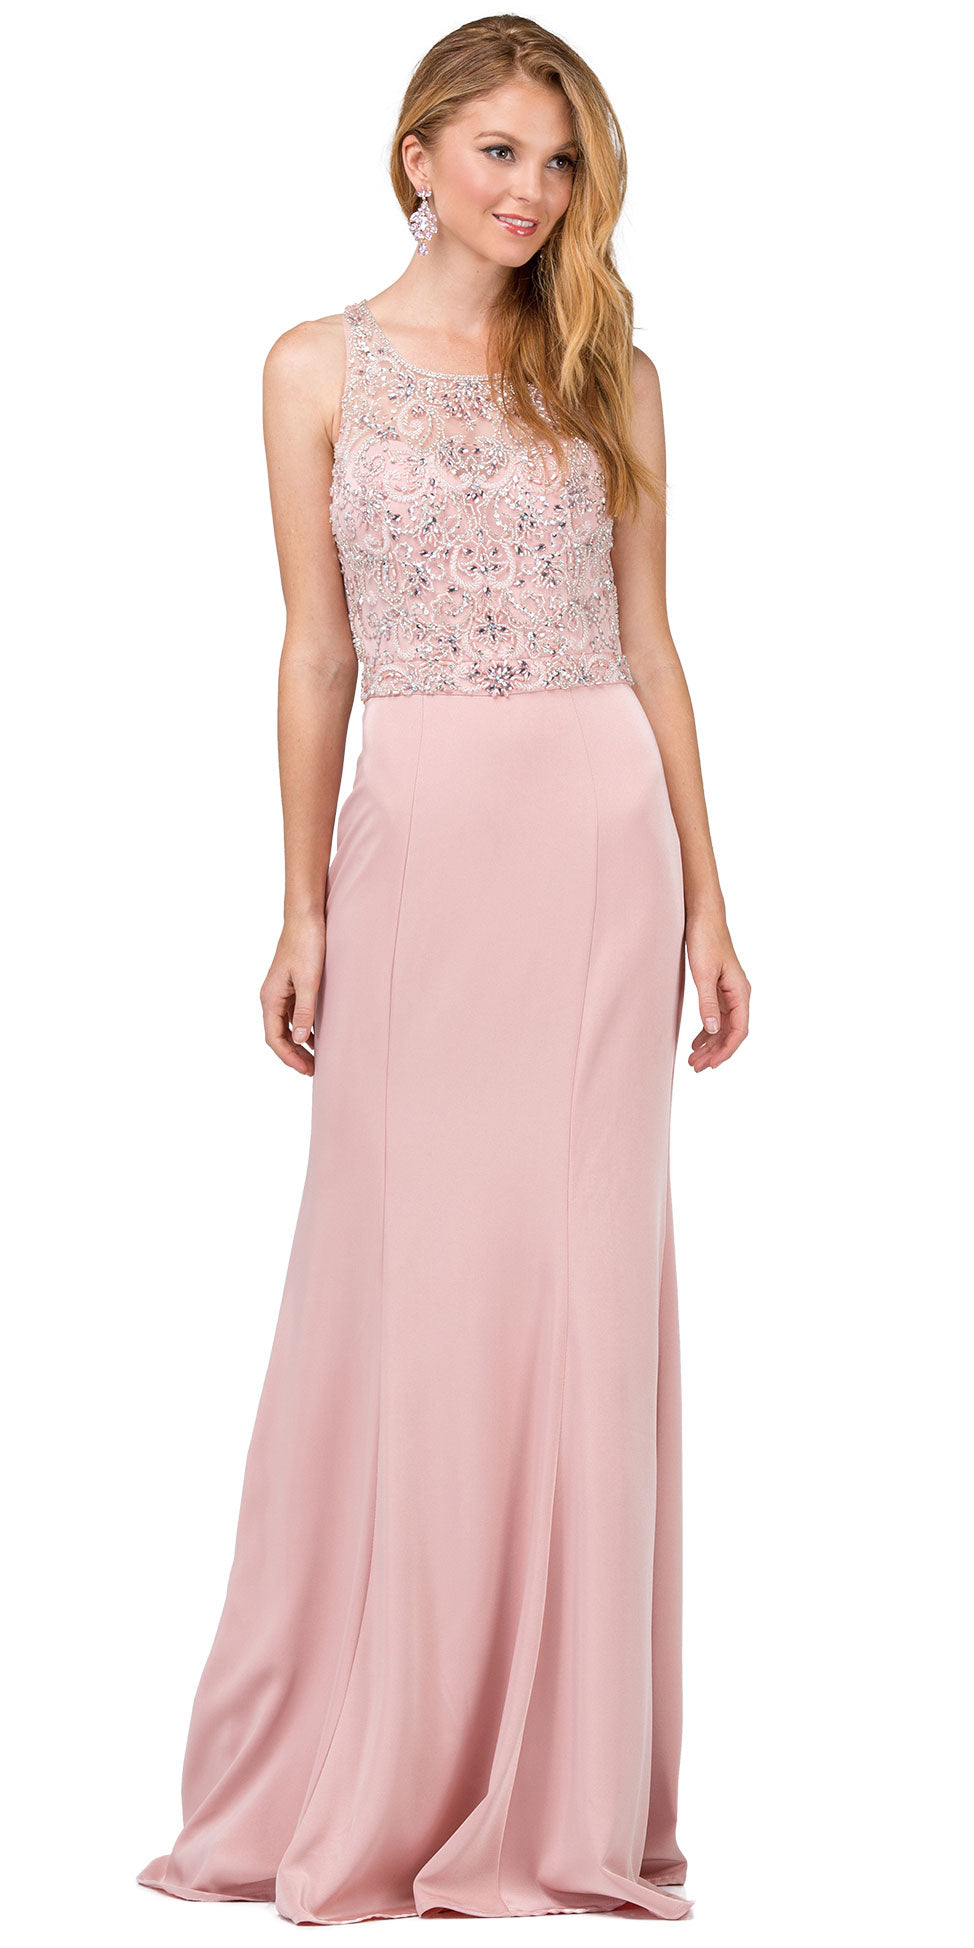 Image of Bejeweled Bodice Round Neck Sleeveless Long Prom Dress in Dusty Pink